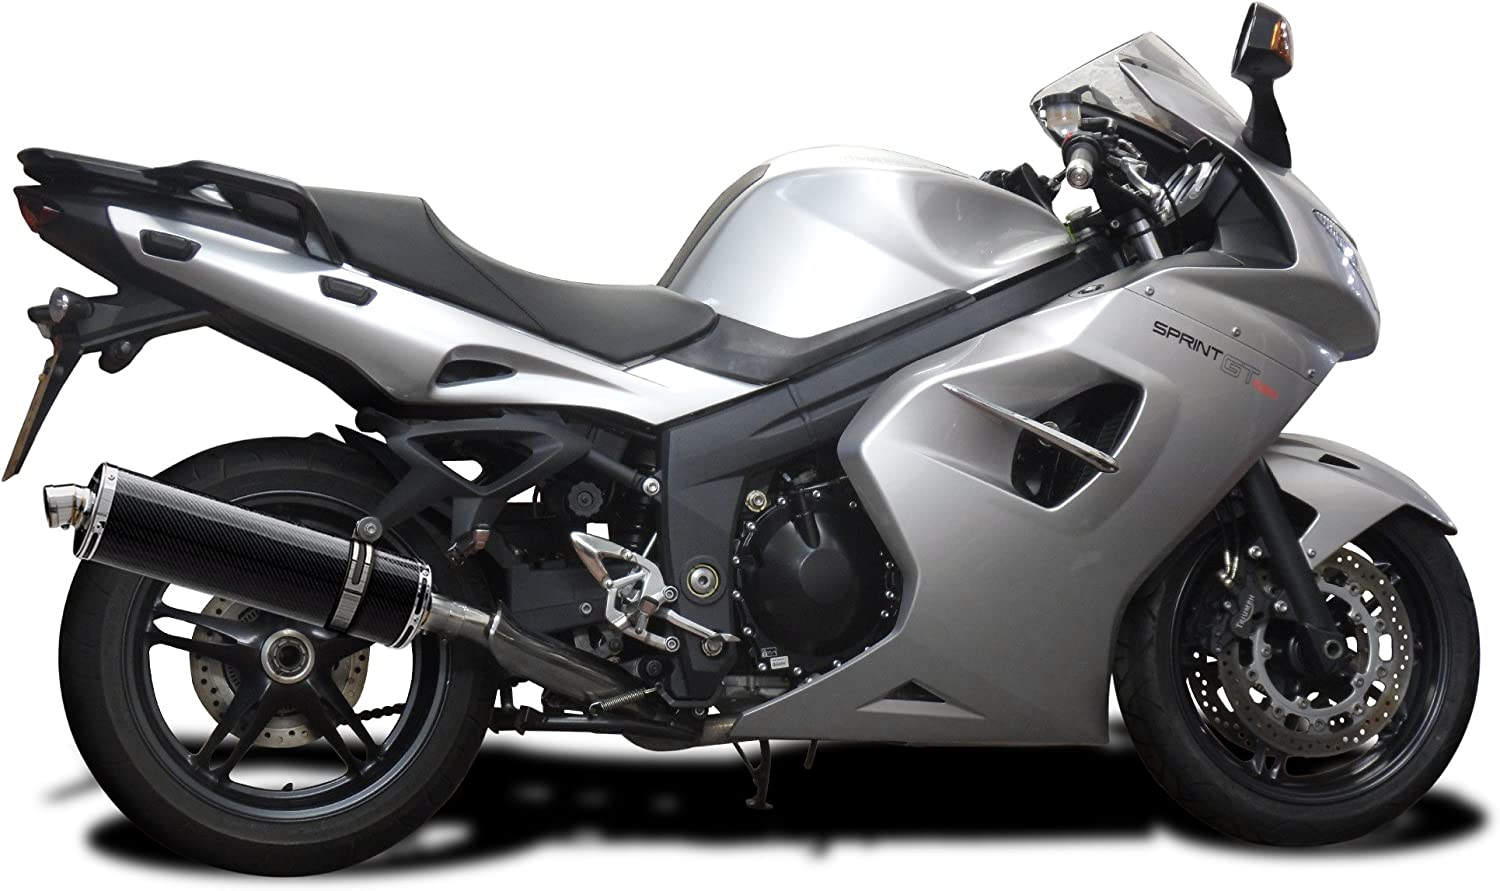 Delkevic Aftermarket Slip On compatible with Triumph Sprint GT 18 Carbon Fiber Oval Muffler Exhaust 11-14